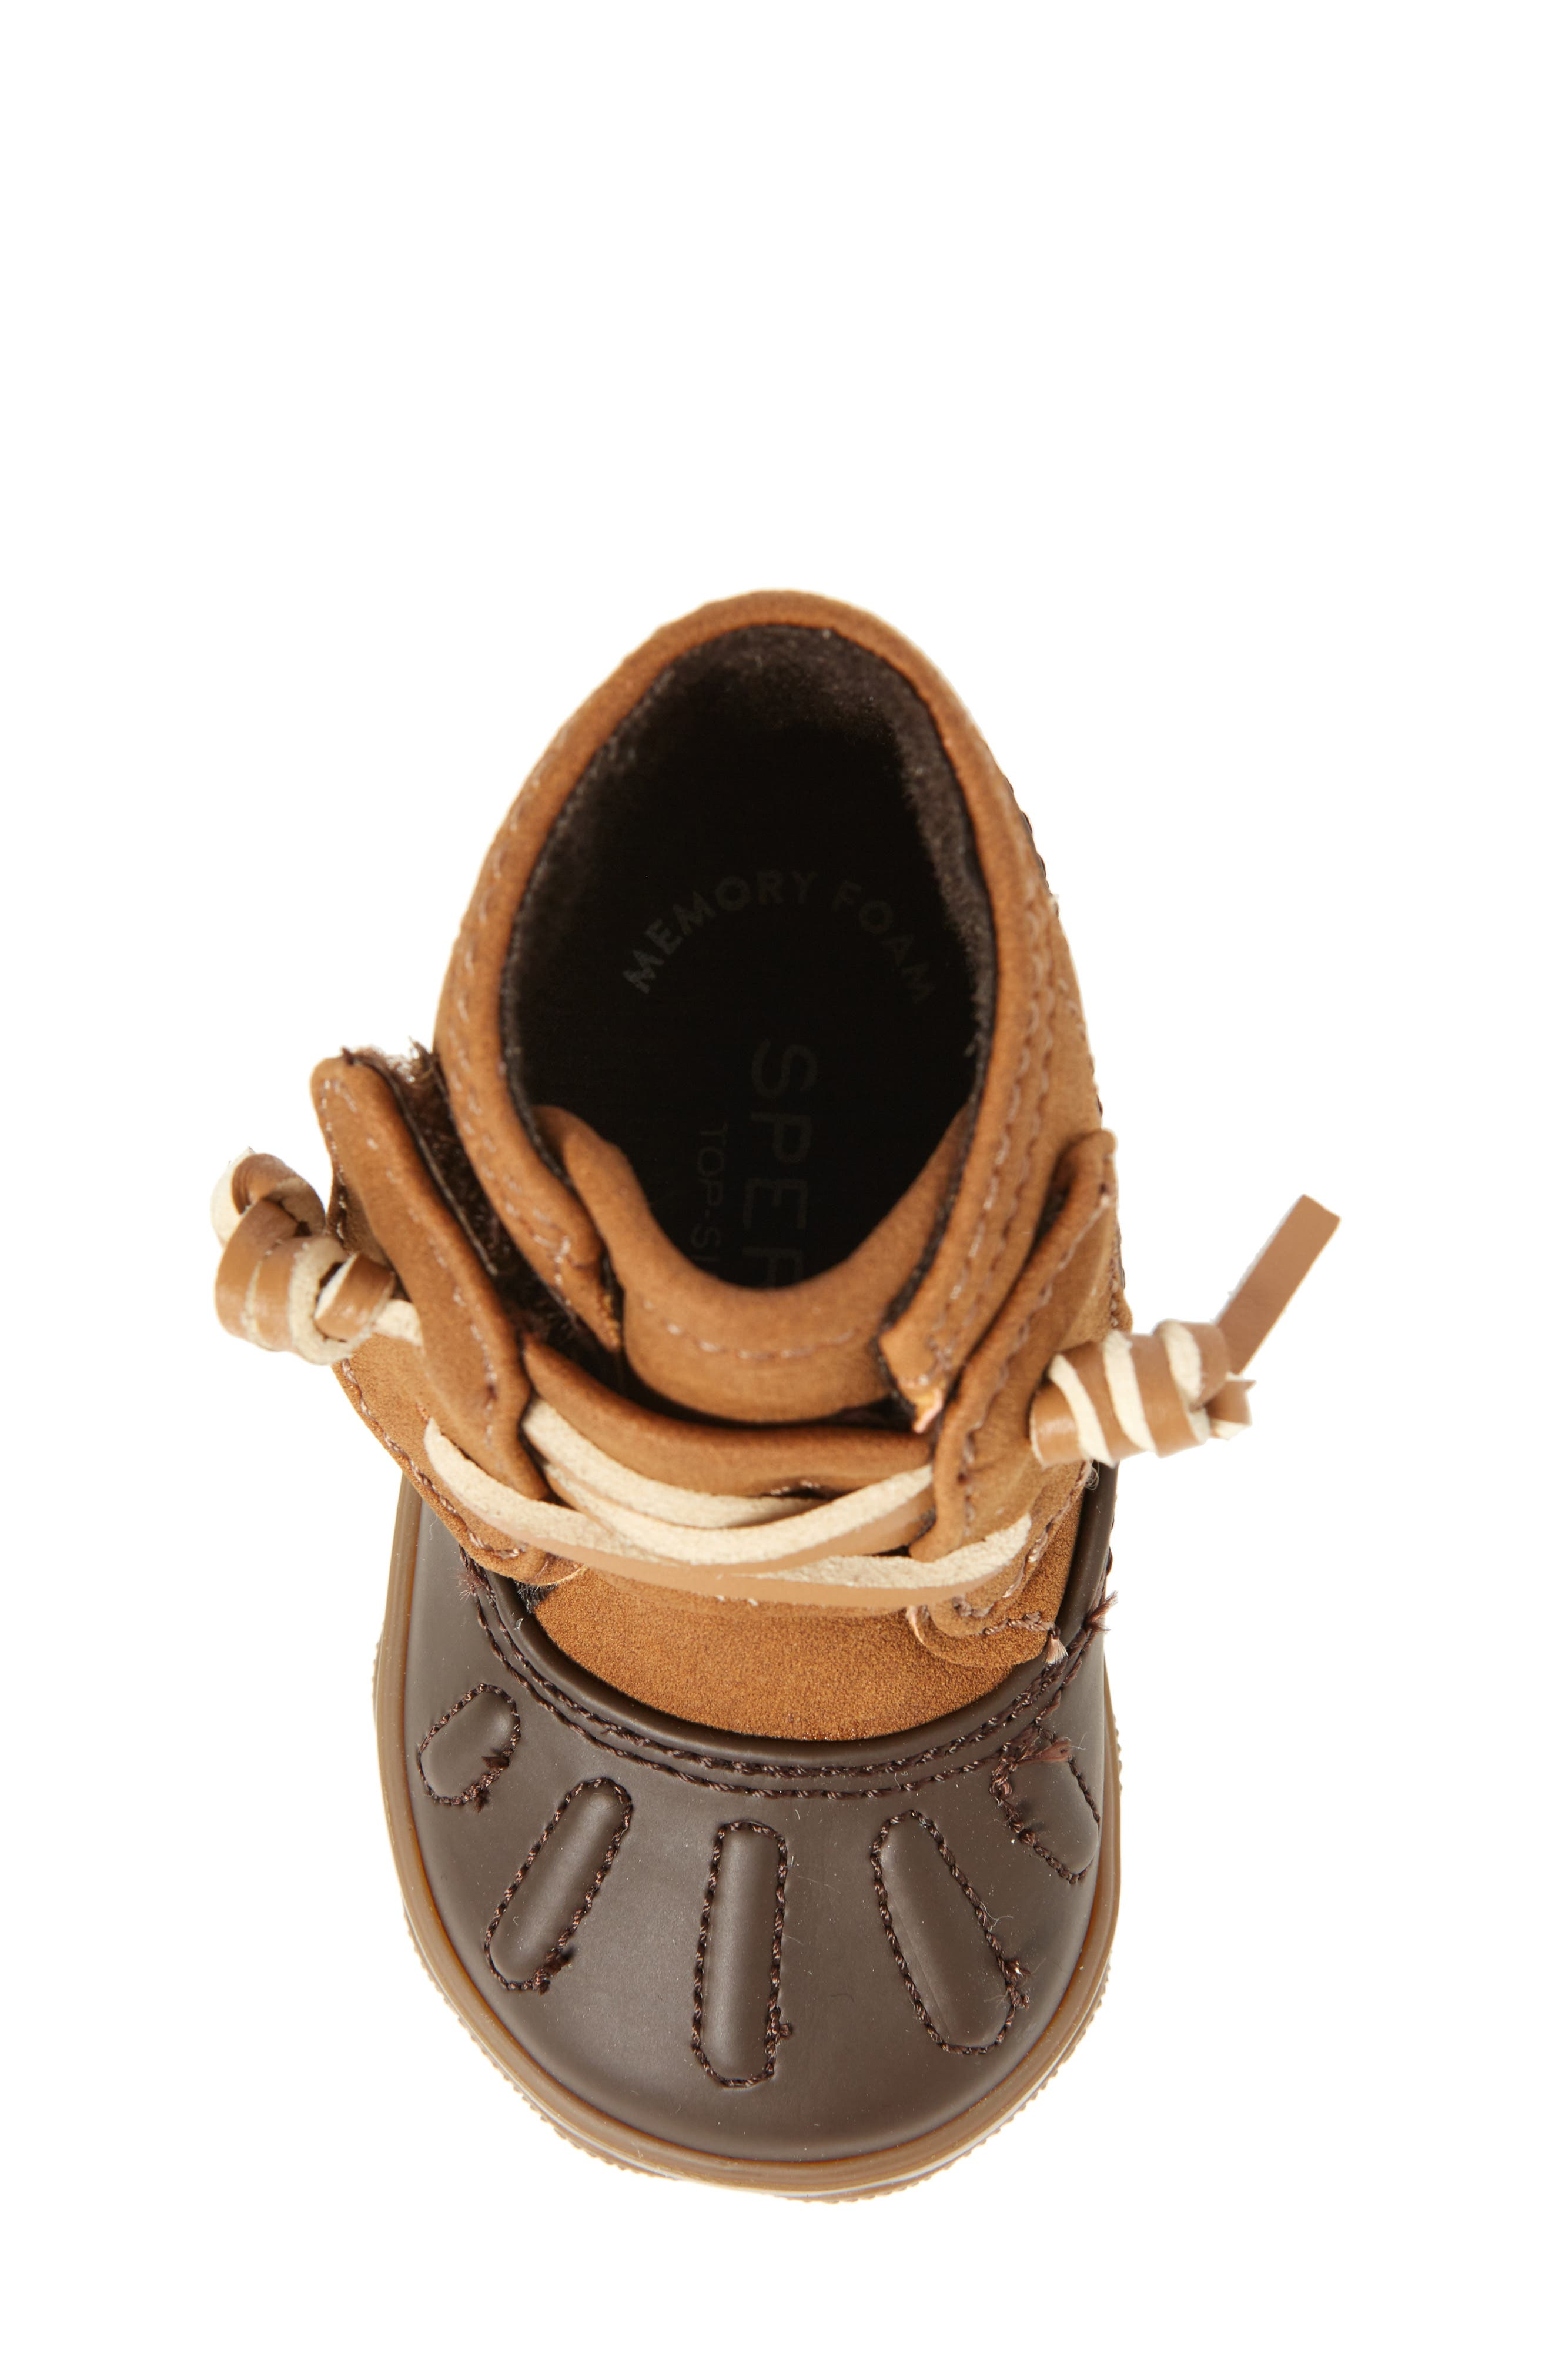 Sperry Icestorm Crib Duck Bootie,                             Alternate thumbnail 5, color,                             Tan/ Brown